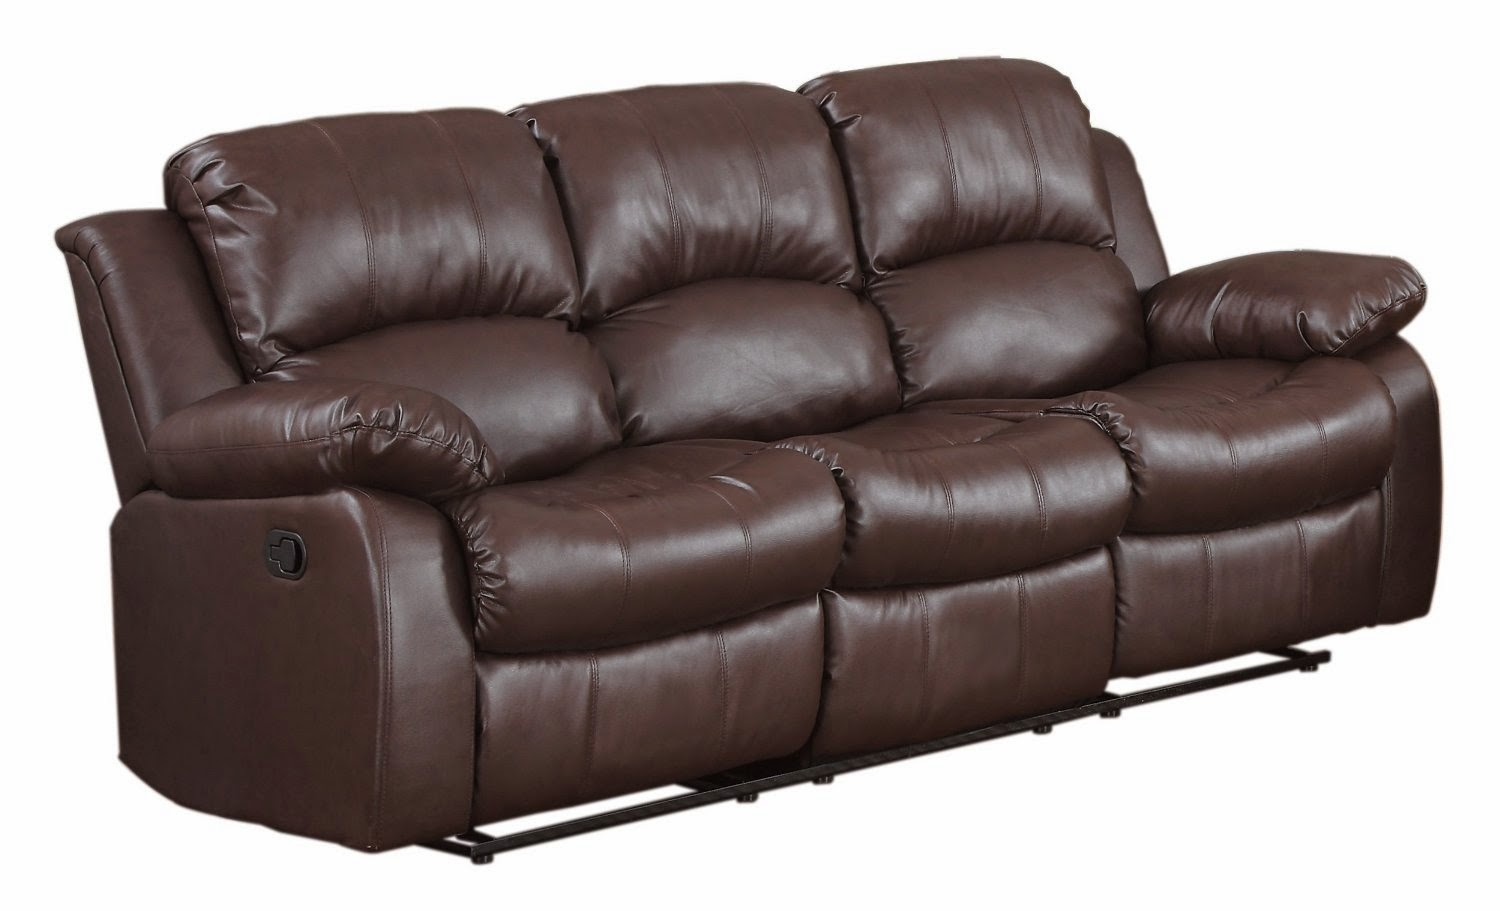 The best reclining leather sofa reviews loukas leather reclining sectional sofa with reclining Loveseat chaise sectional